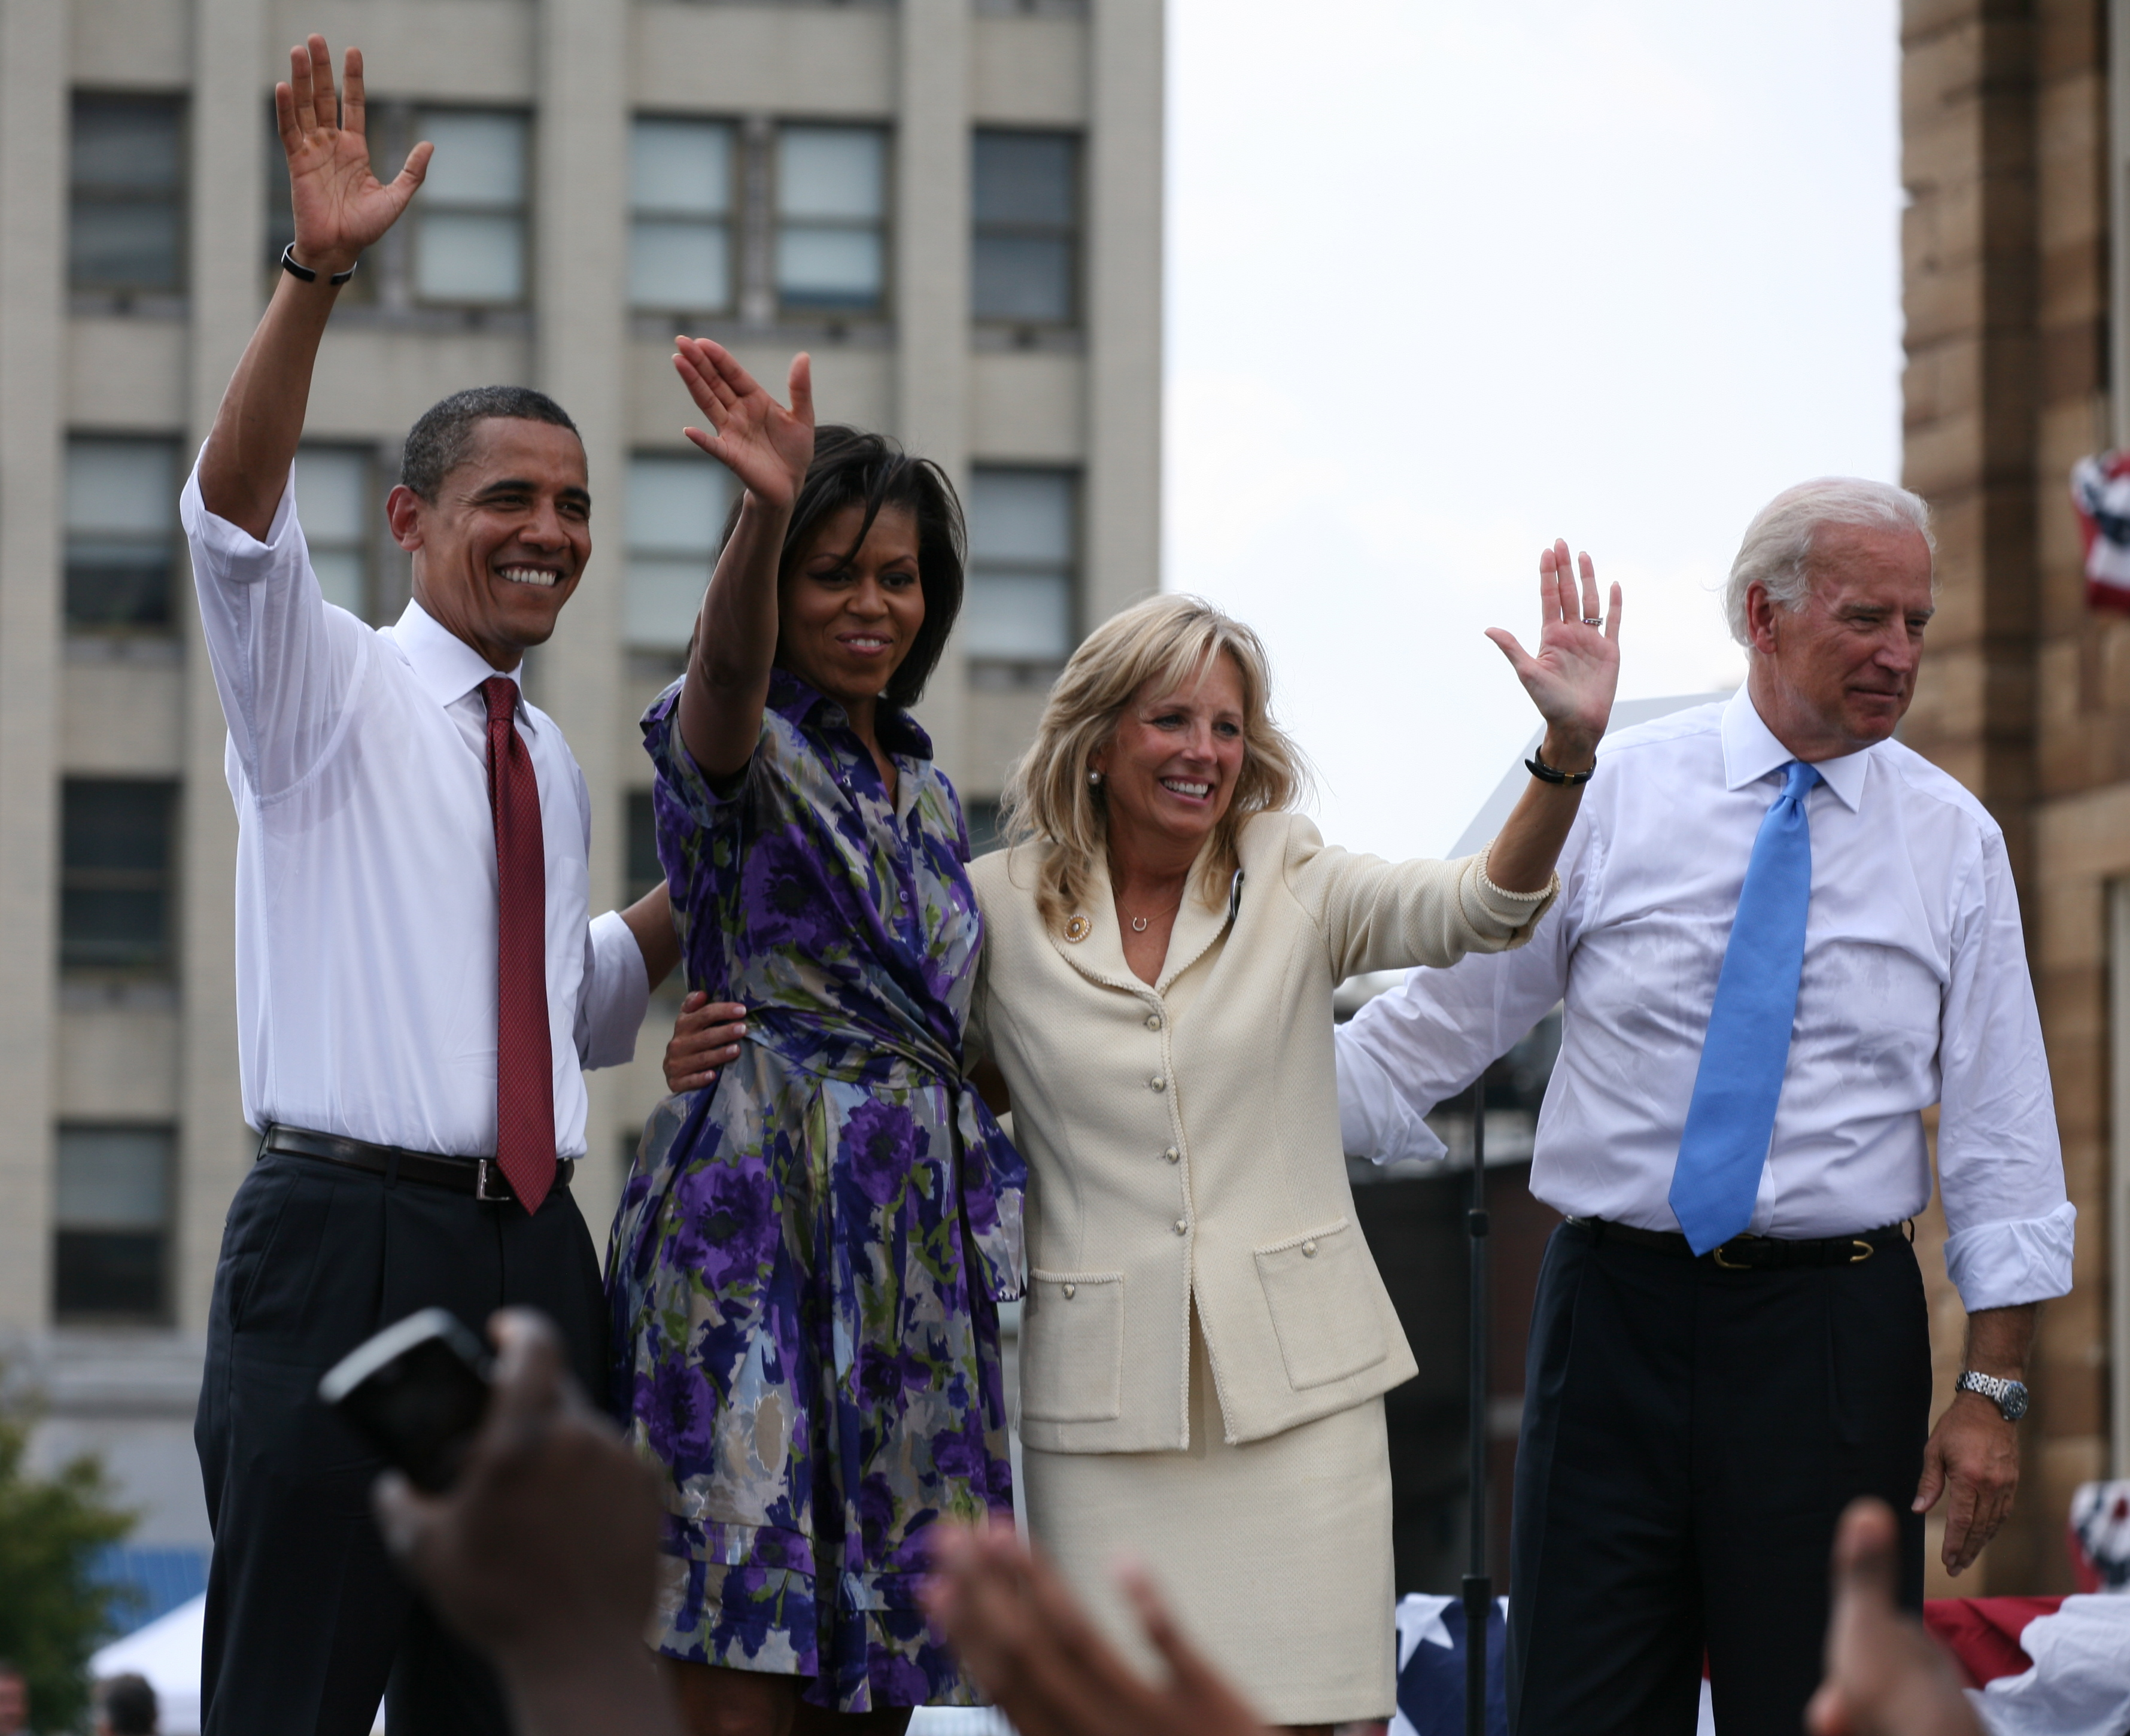 Barack And Michelle Obama And A Woman And A Man On An Outdoor Stage. The